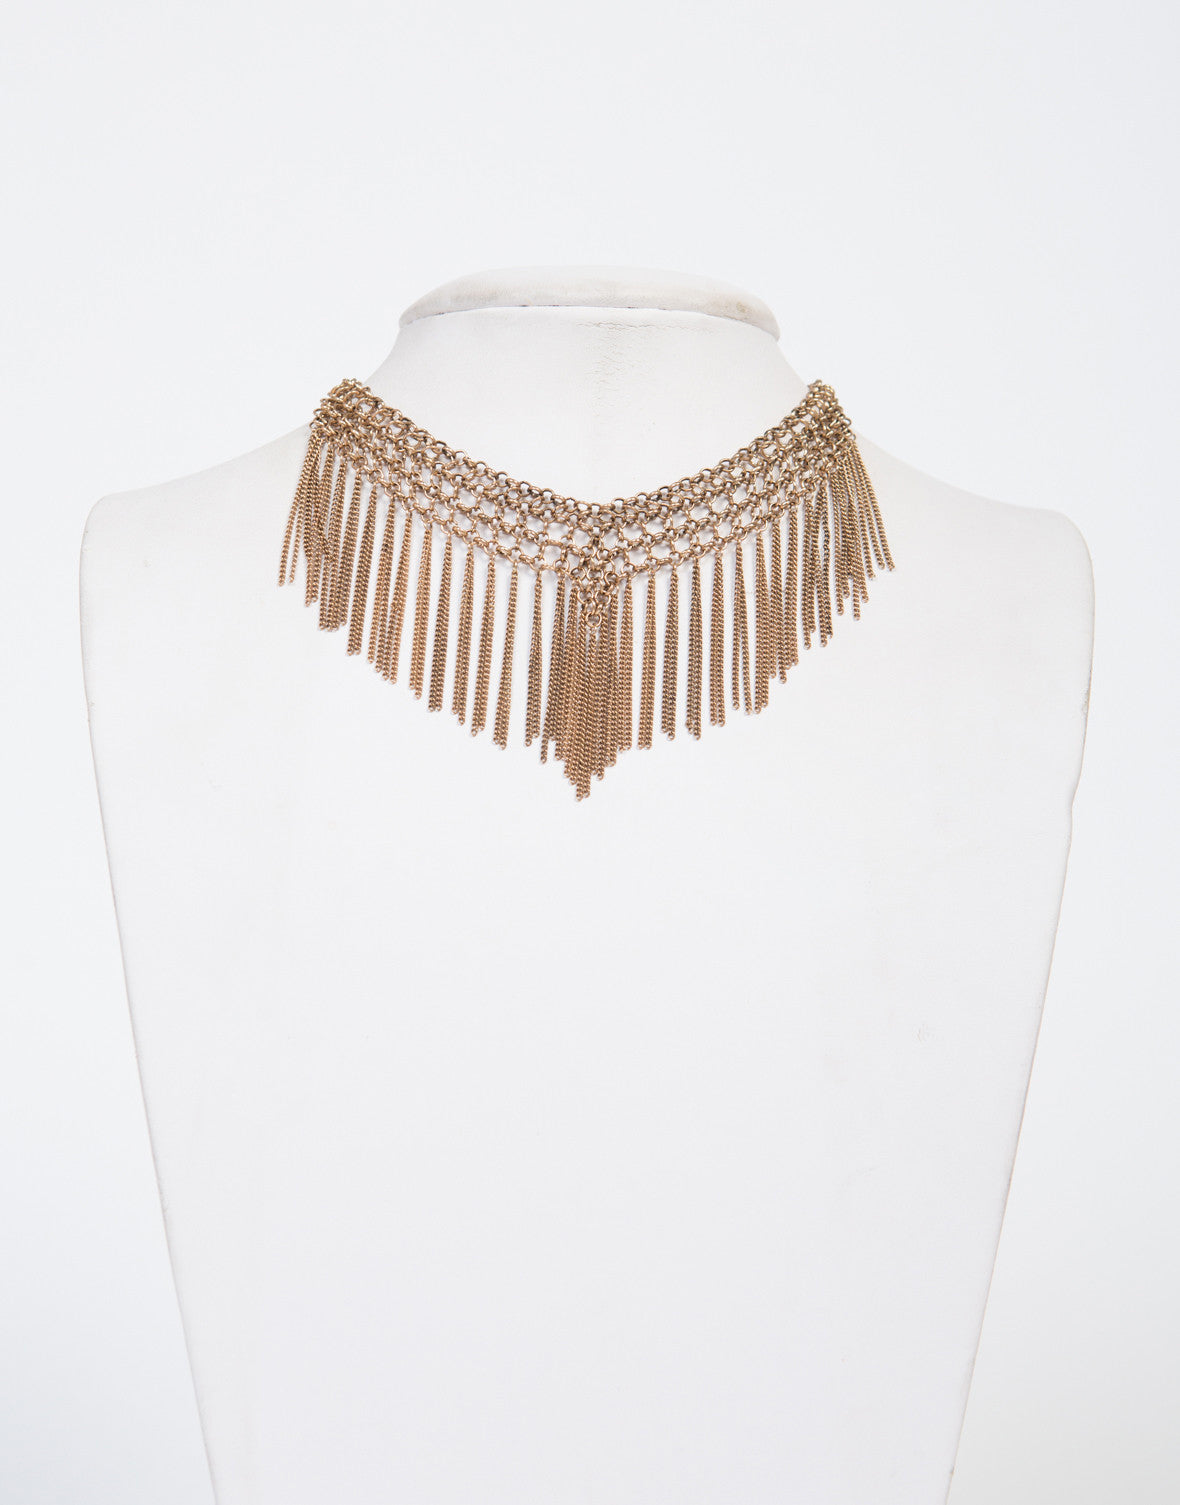 Chain Reaction Choker Necklace